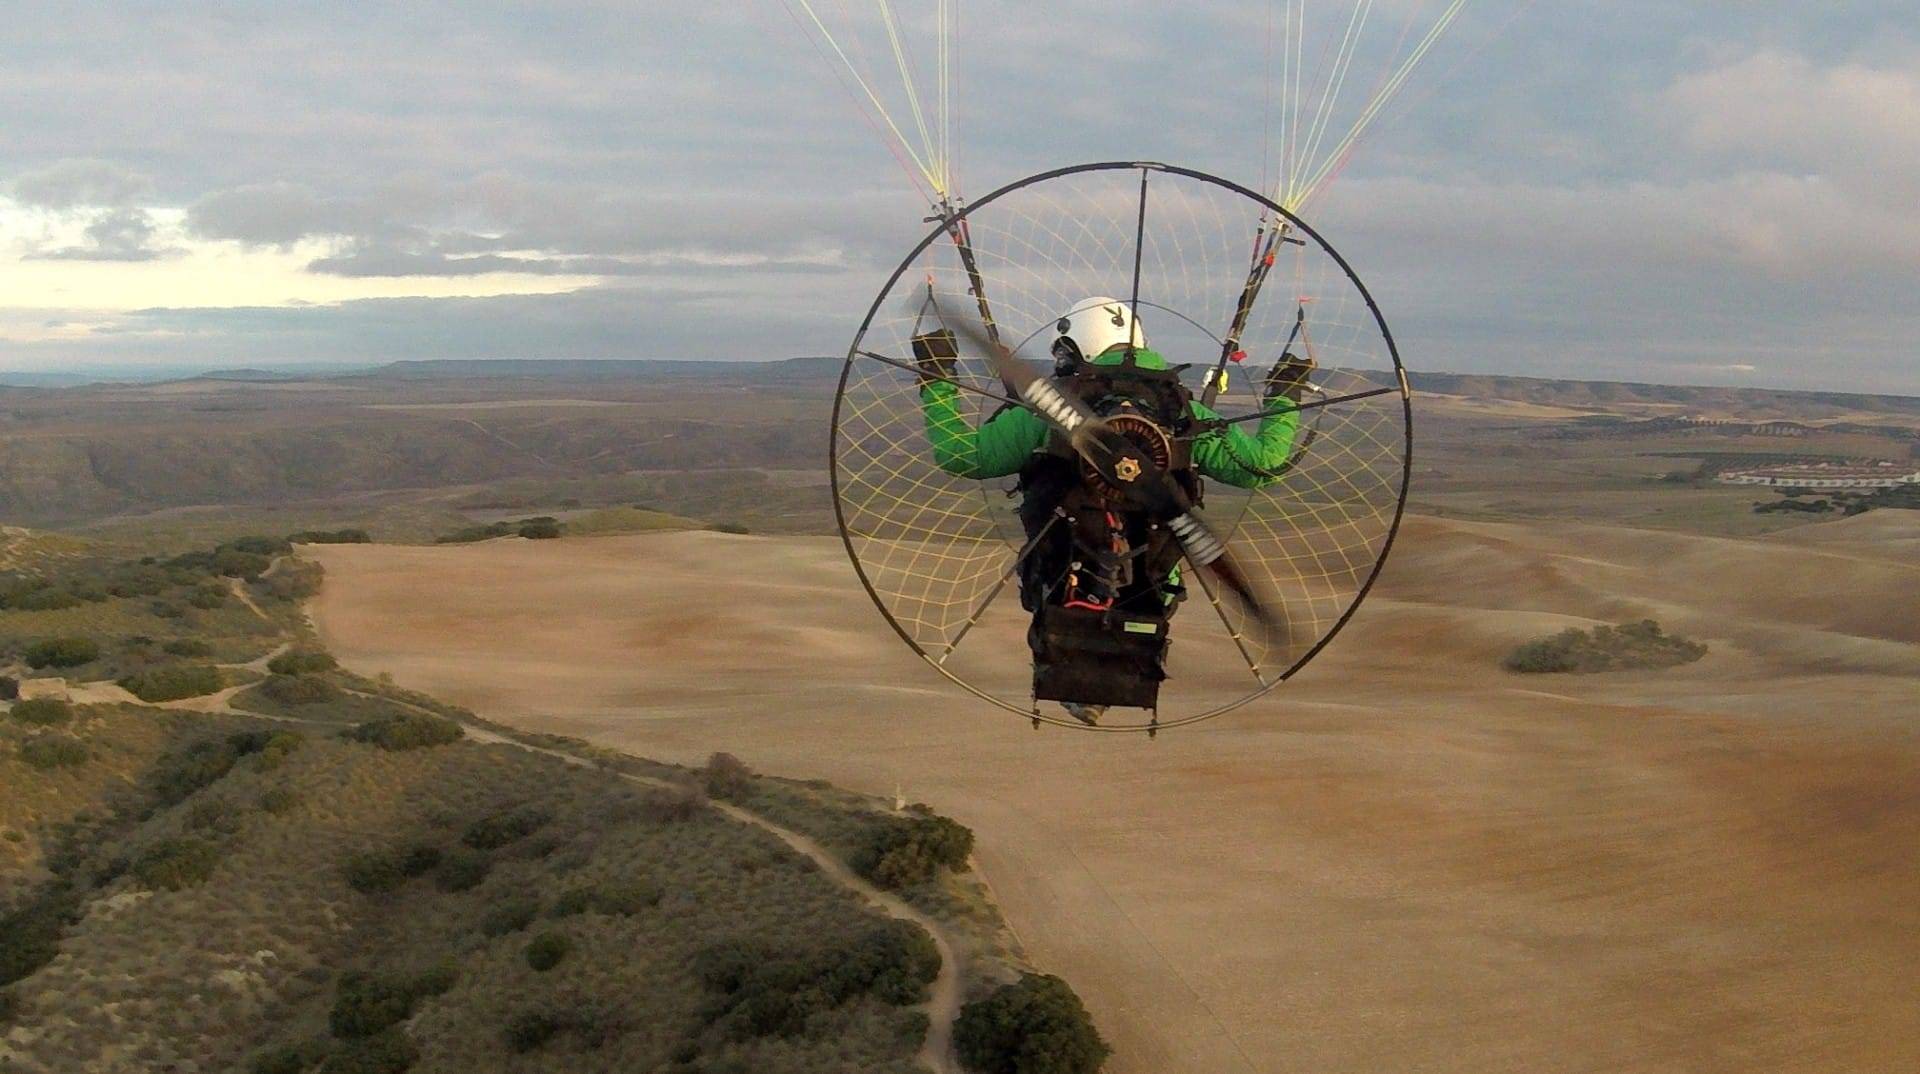 PARACELL, paragliding in cooperation with MGM COMPRO